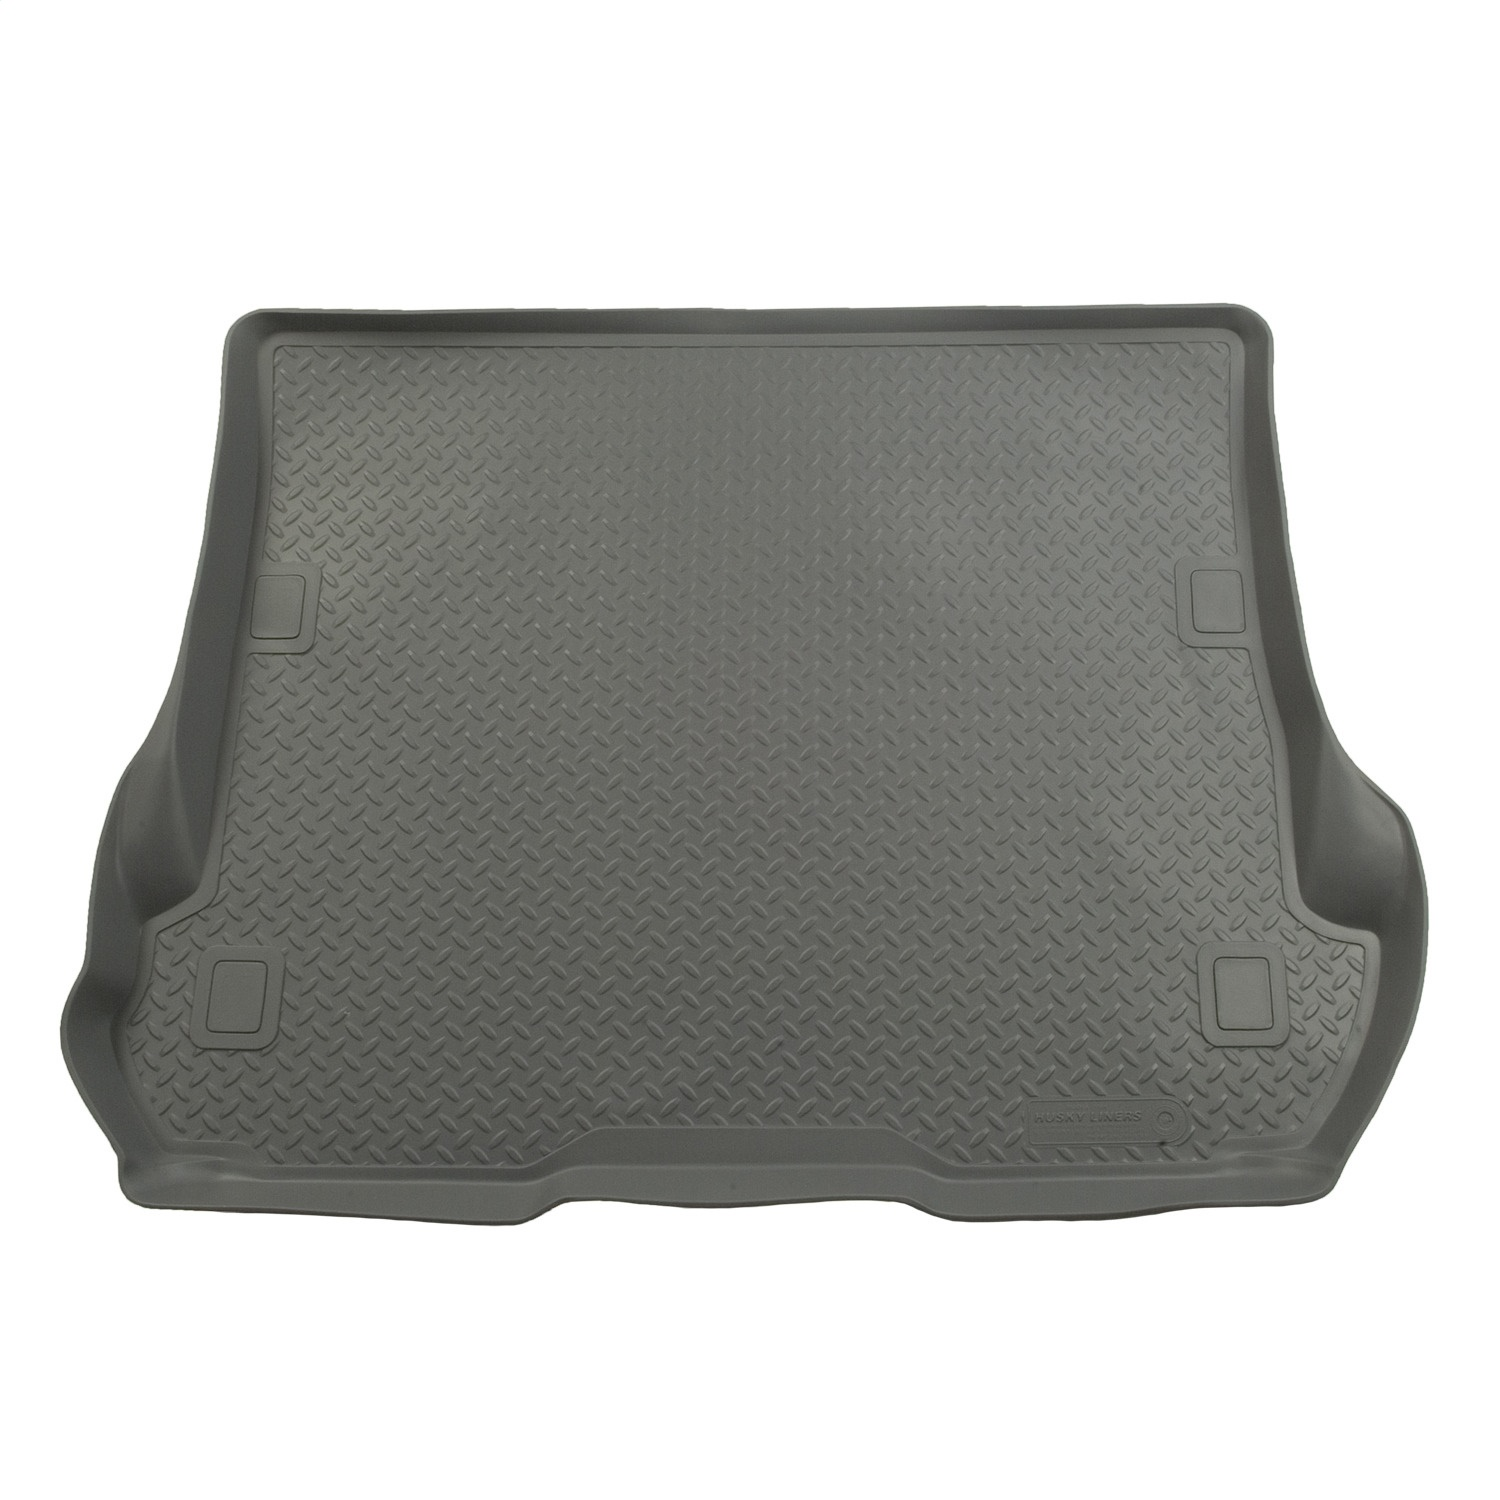 Husky Liners 24302 Classic Style Cargo Liner Fits 01-08 MDX Pilot